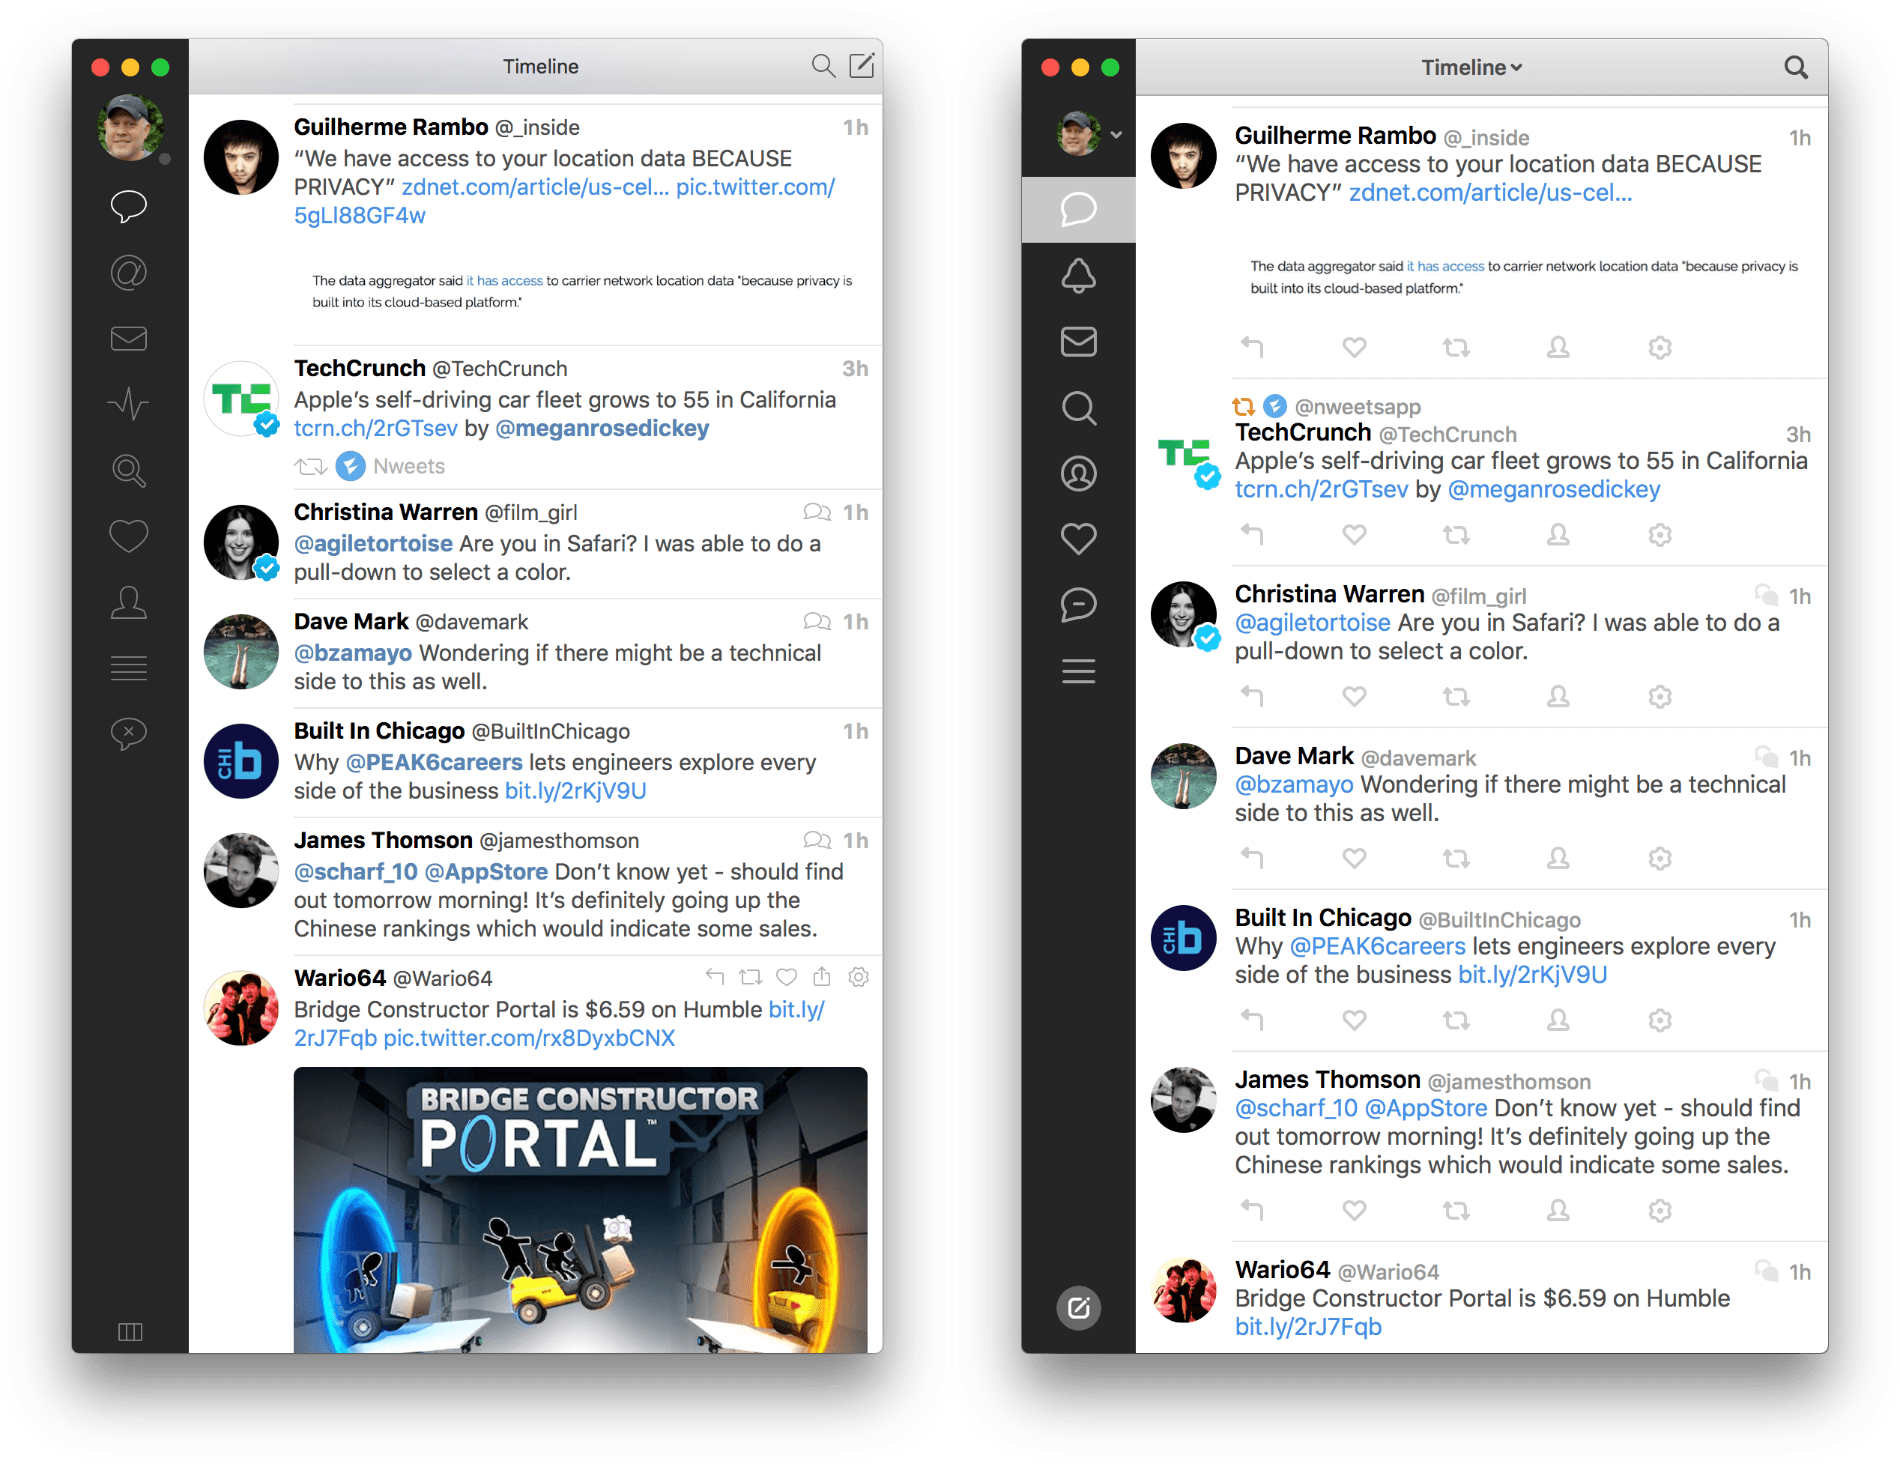 Tweetbot version 2.5 (left) and version 3.0 (right)